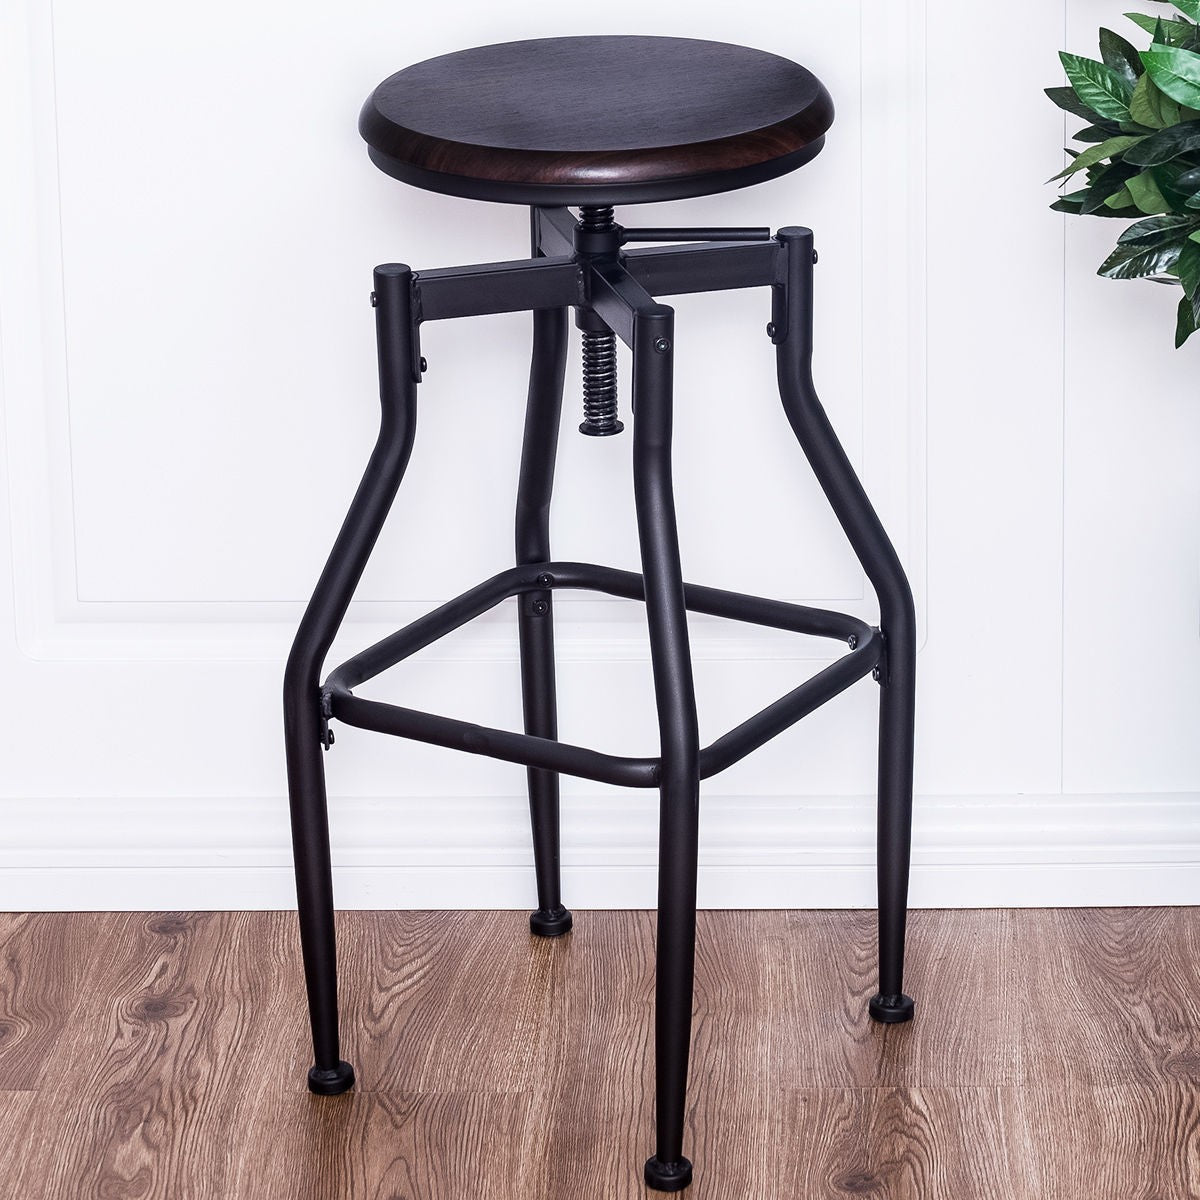 Marvelous Wood Top Height Adjustable Swivel Vintage Bar Stool Machost Co Dining Chair Design Ideas Machostcouk